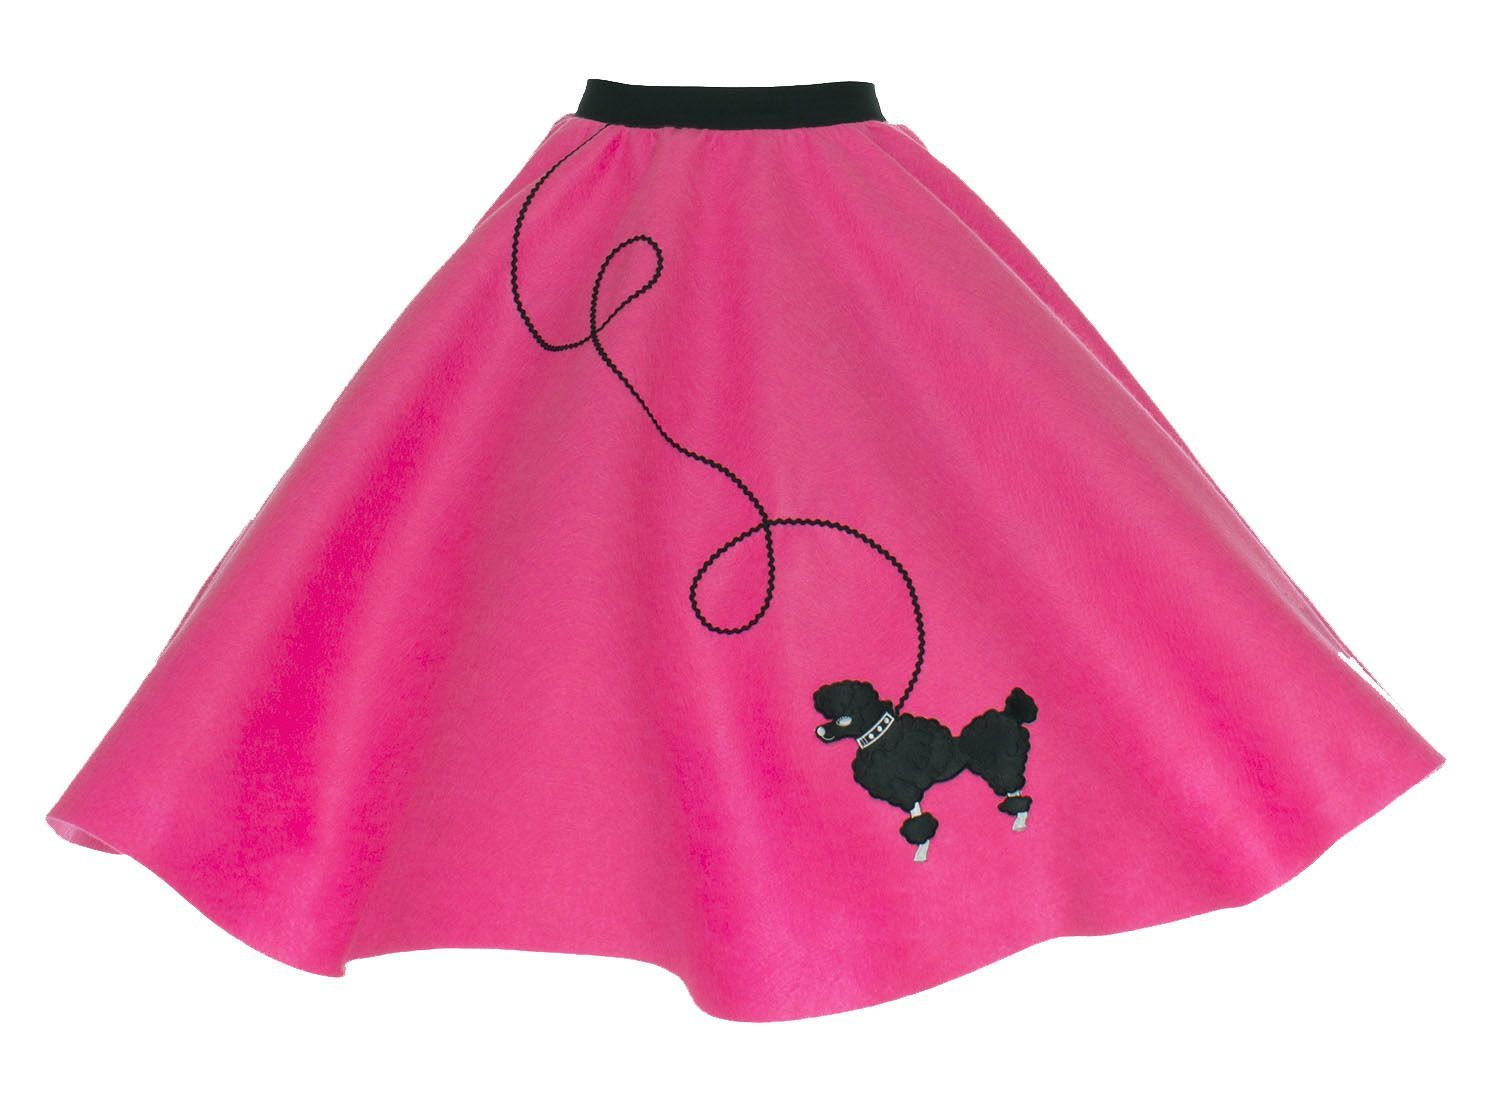 "NEW 6 PC NEON PINK 50/'s POODLE SKIRT OUTFIT ADULT SiZe Small WAIST 25/""-32/"" L25/"""